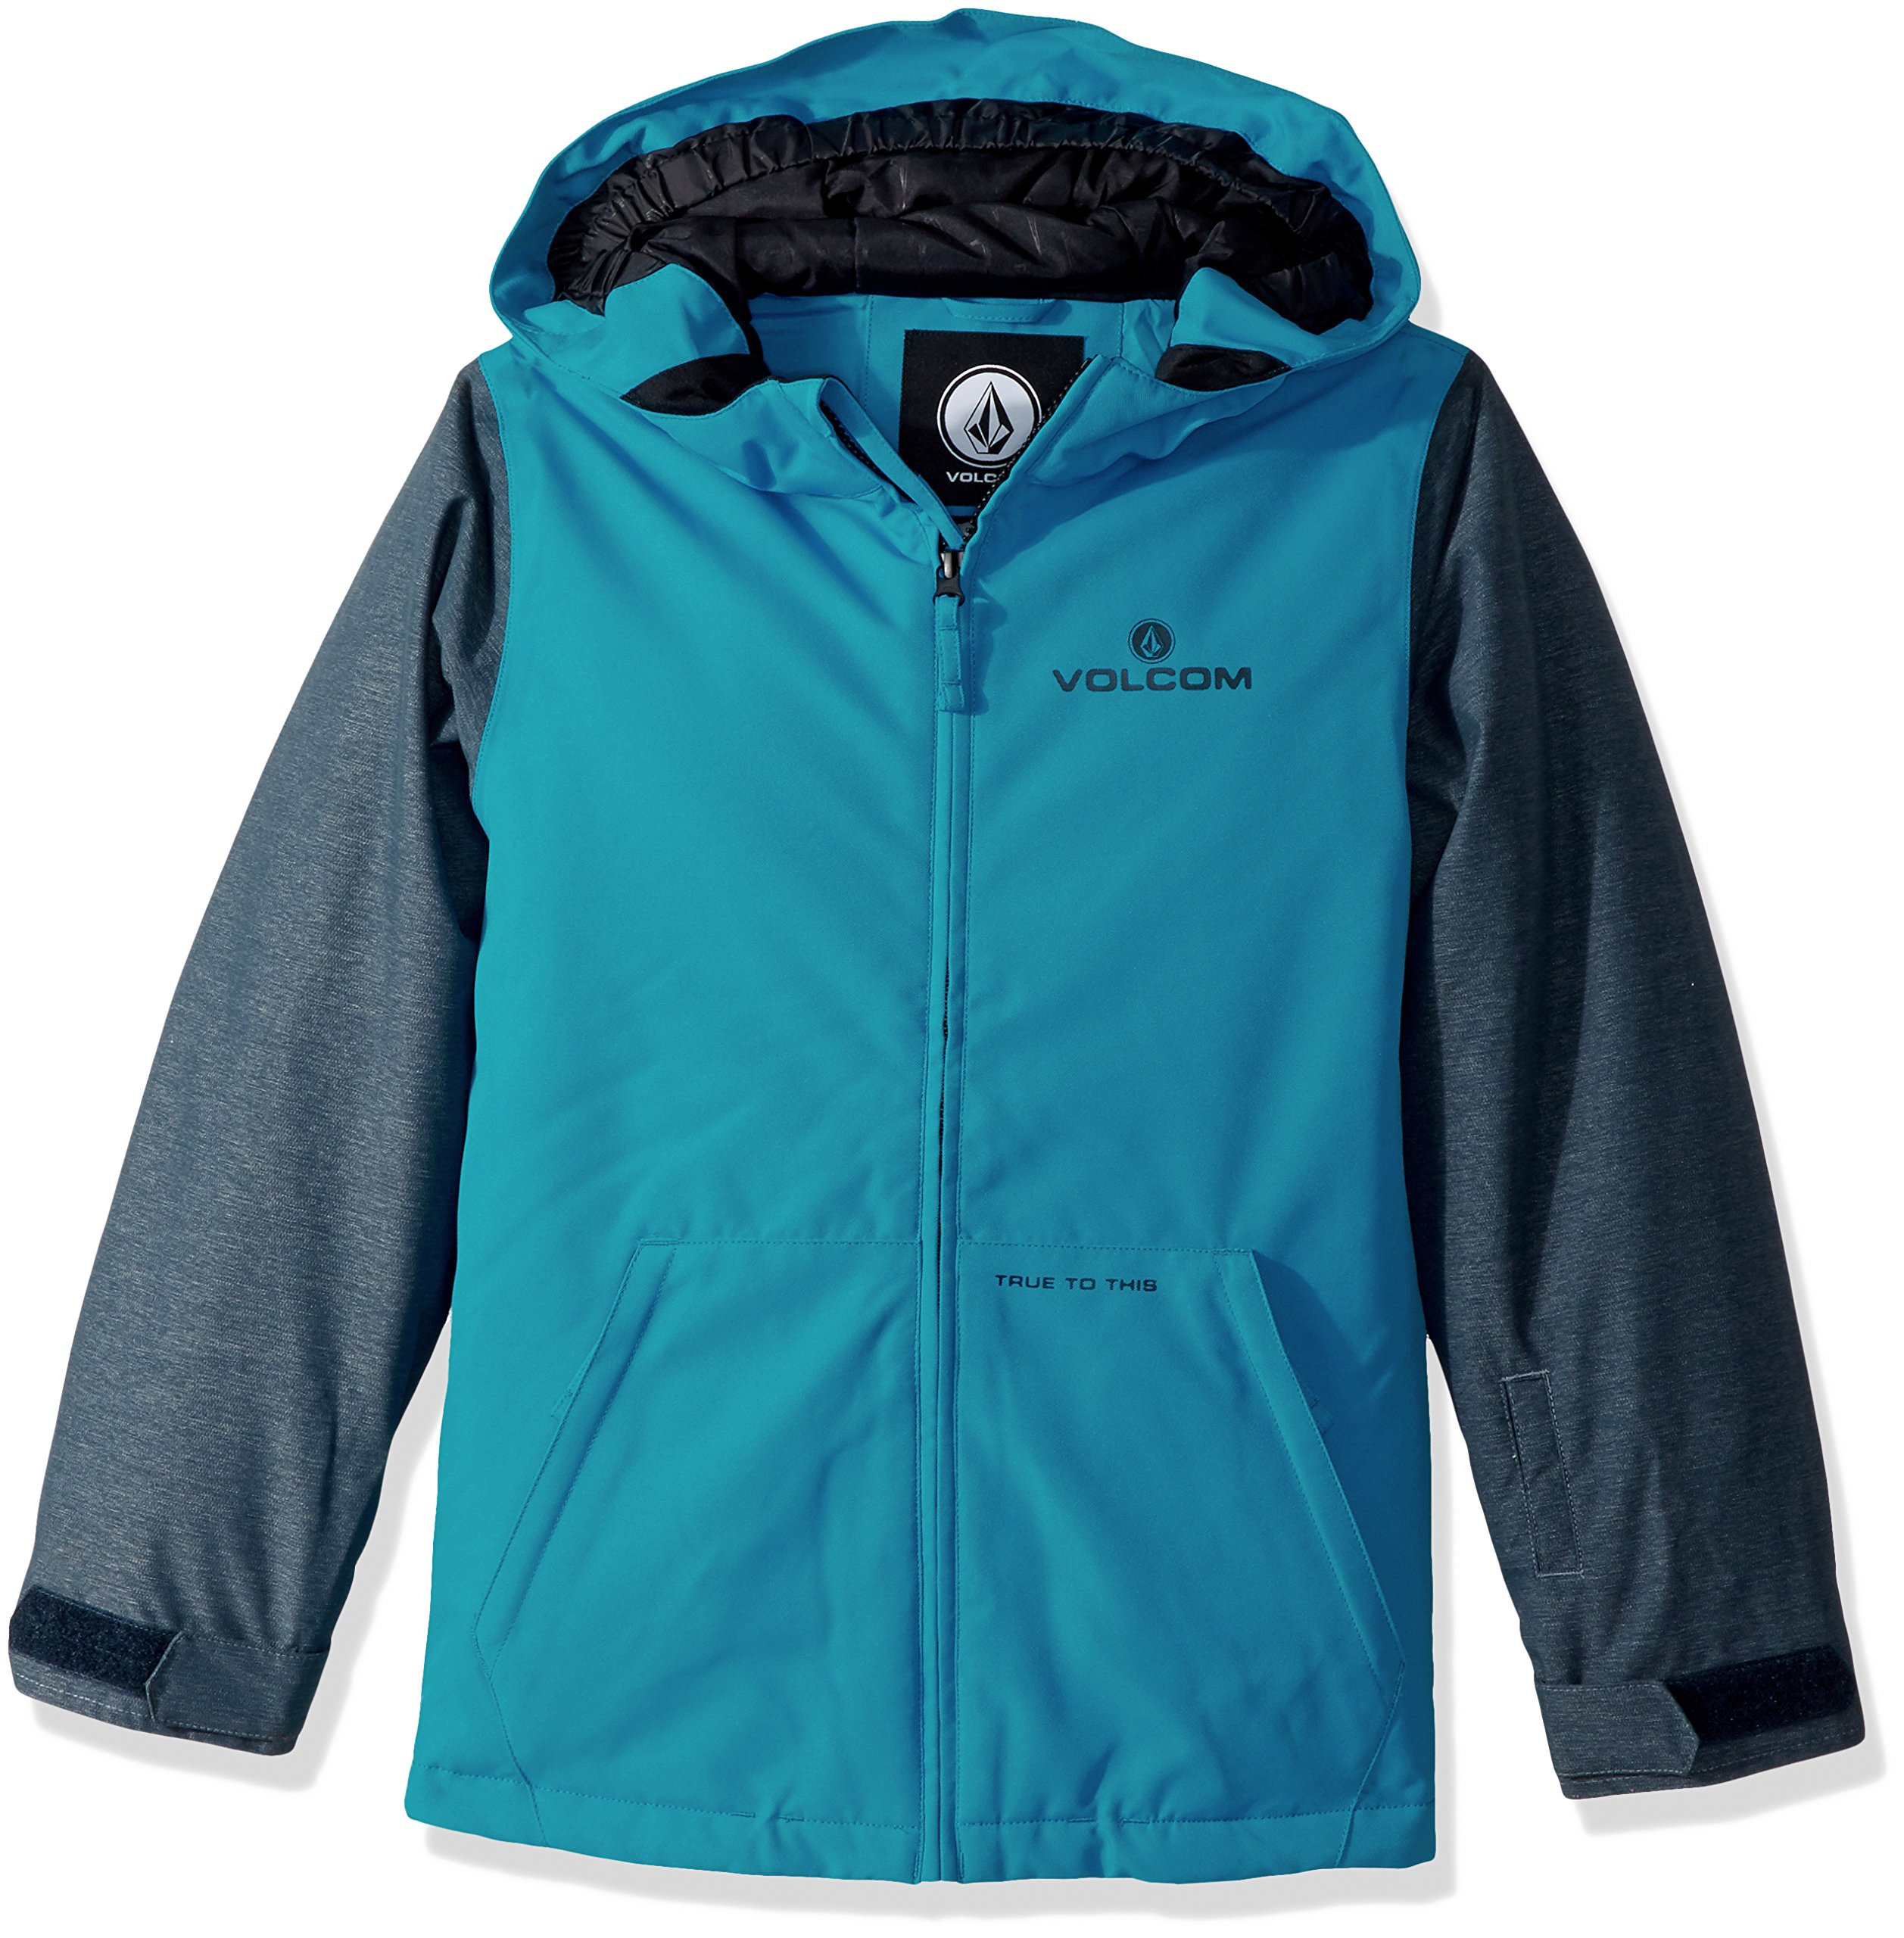 Volcom Big Boys' Selkirk Insulated Jacket, Blue, S by Volcom